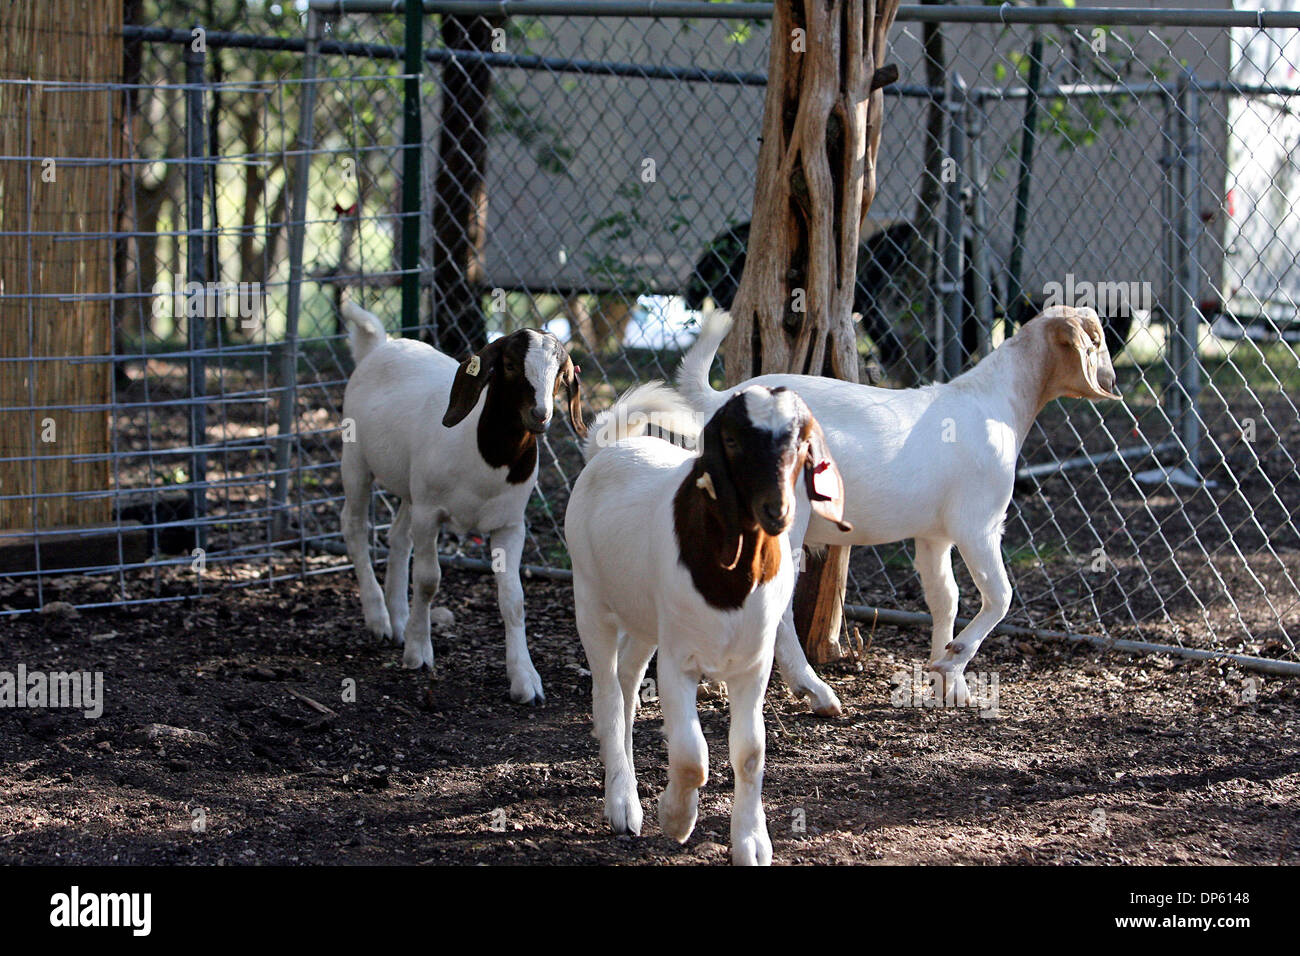 Oct 03, 2006; Bulverde, TX, USA; Goats In The Backyard Of The Haeckers In  Bulverde Are Penned In A Fence Enclosure Detectable By The Neighborsu0027 Dogs.